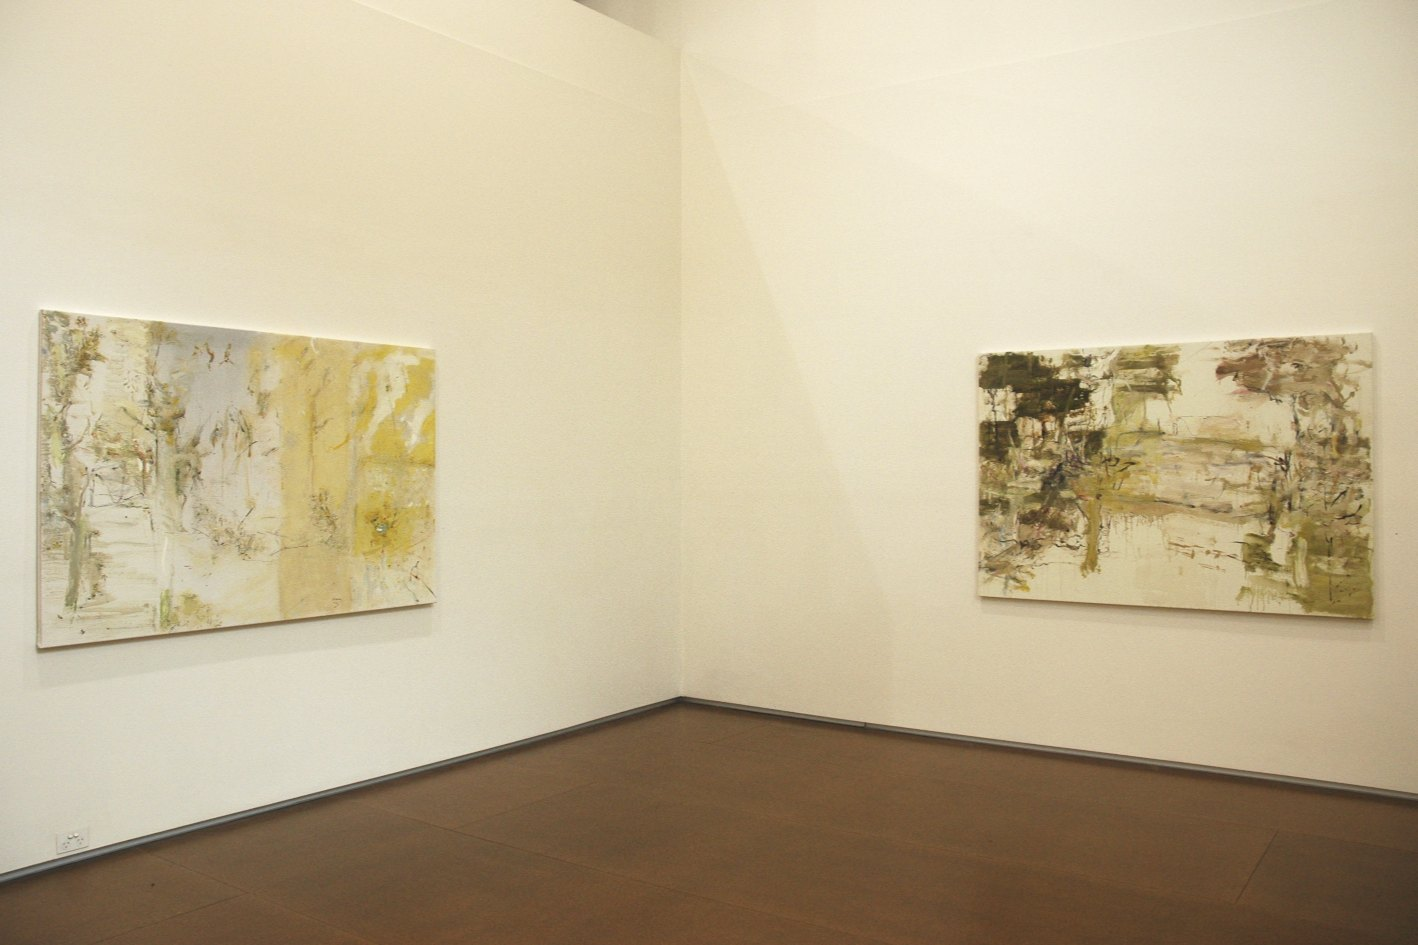 Installation shot from Gateless Gate exhibition at Utopia Art Sydney in 2008.